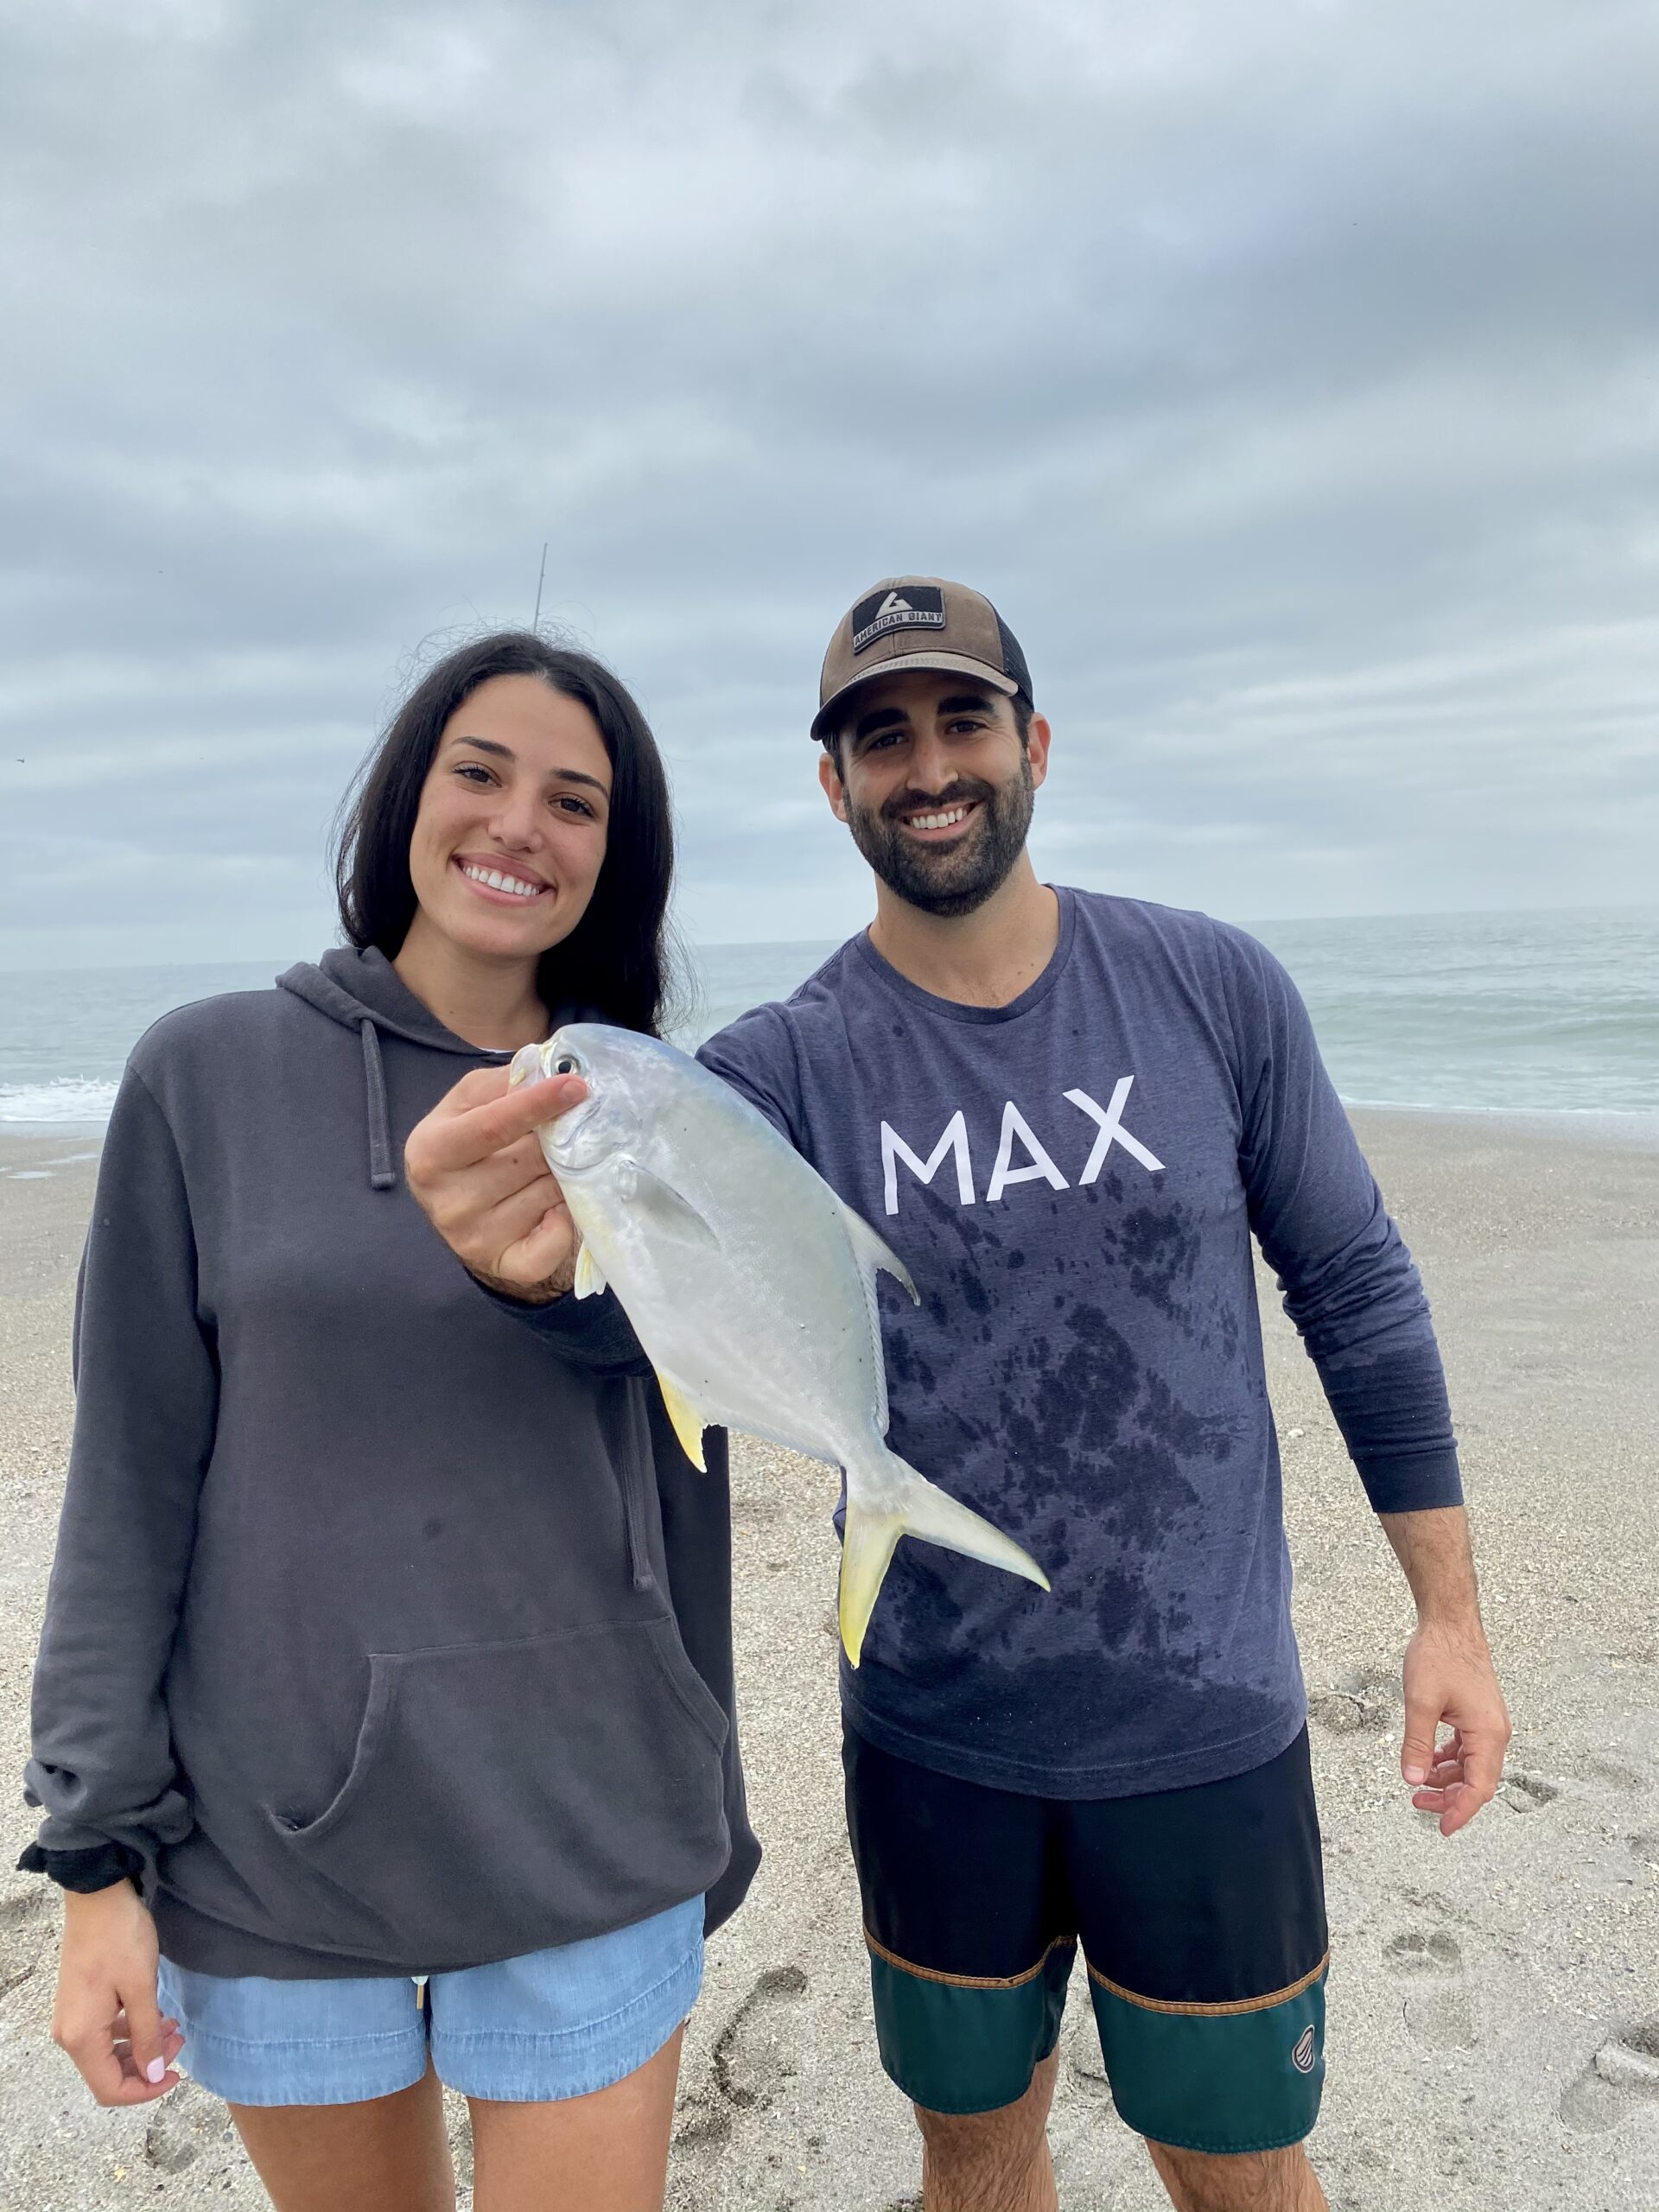 Cocoa Beach to Sebastian Inlet Surf Fishing Report